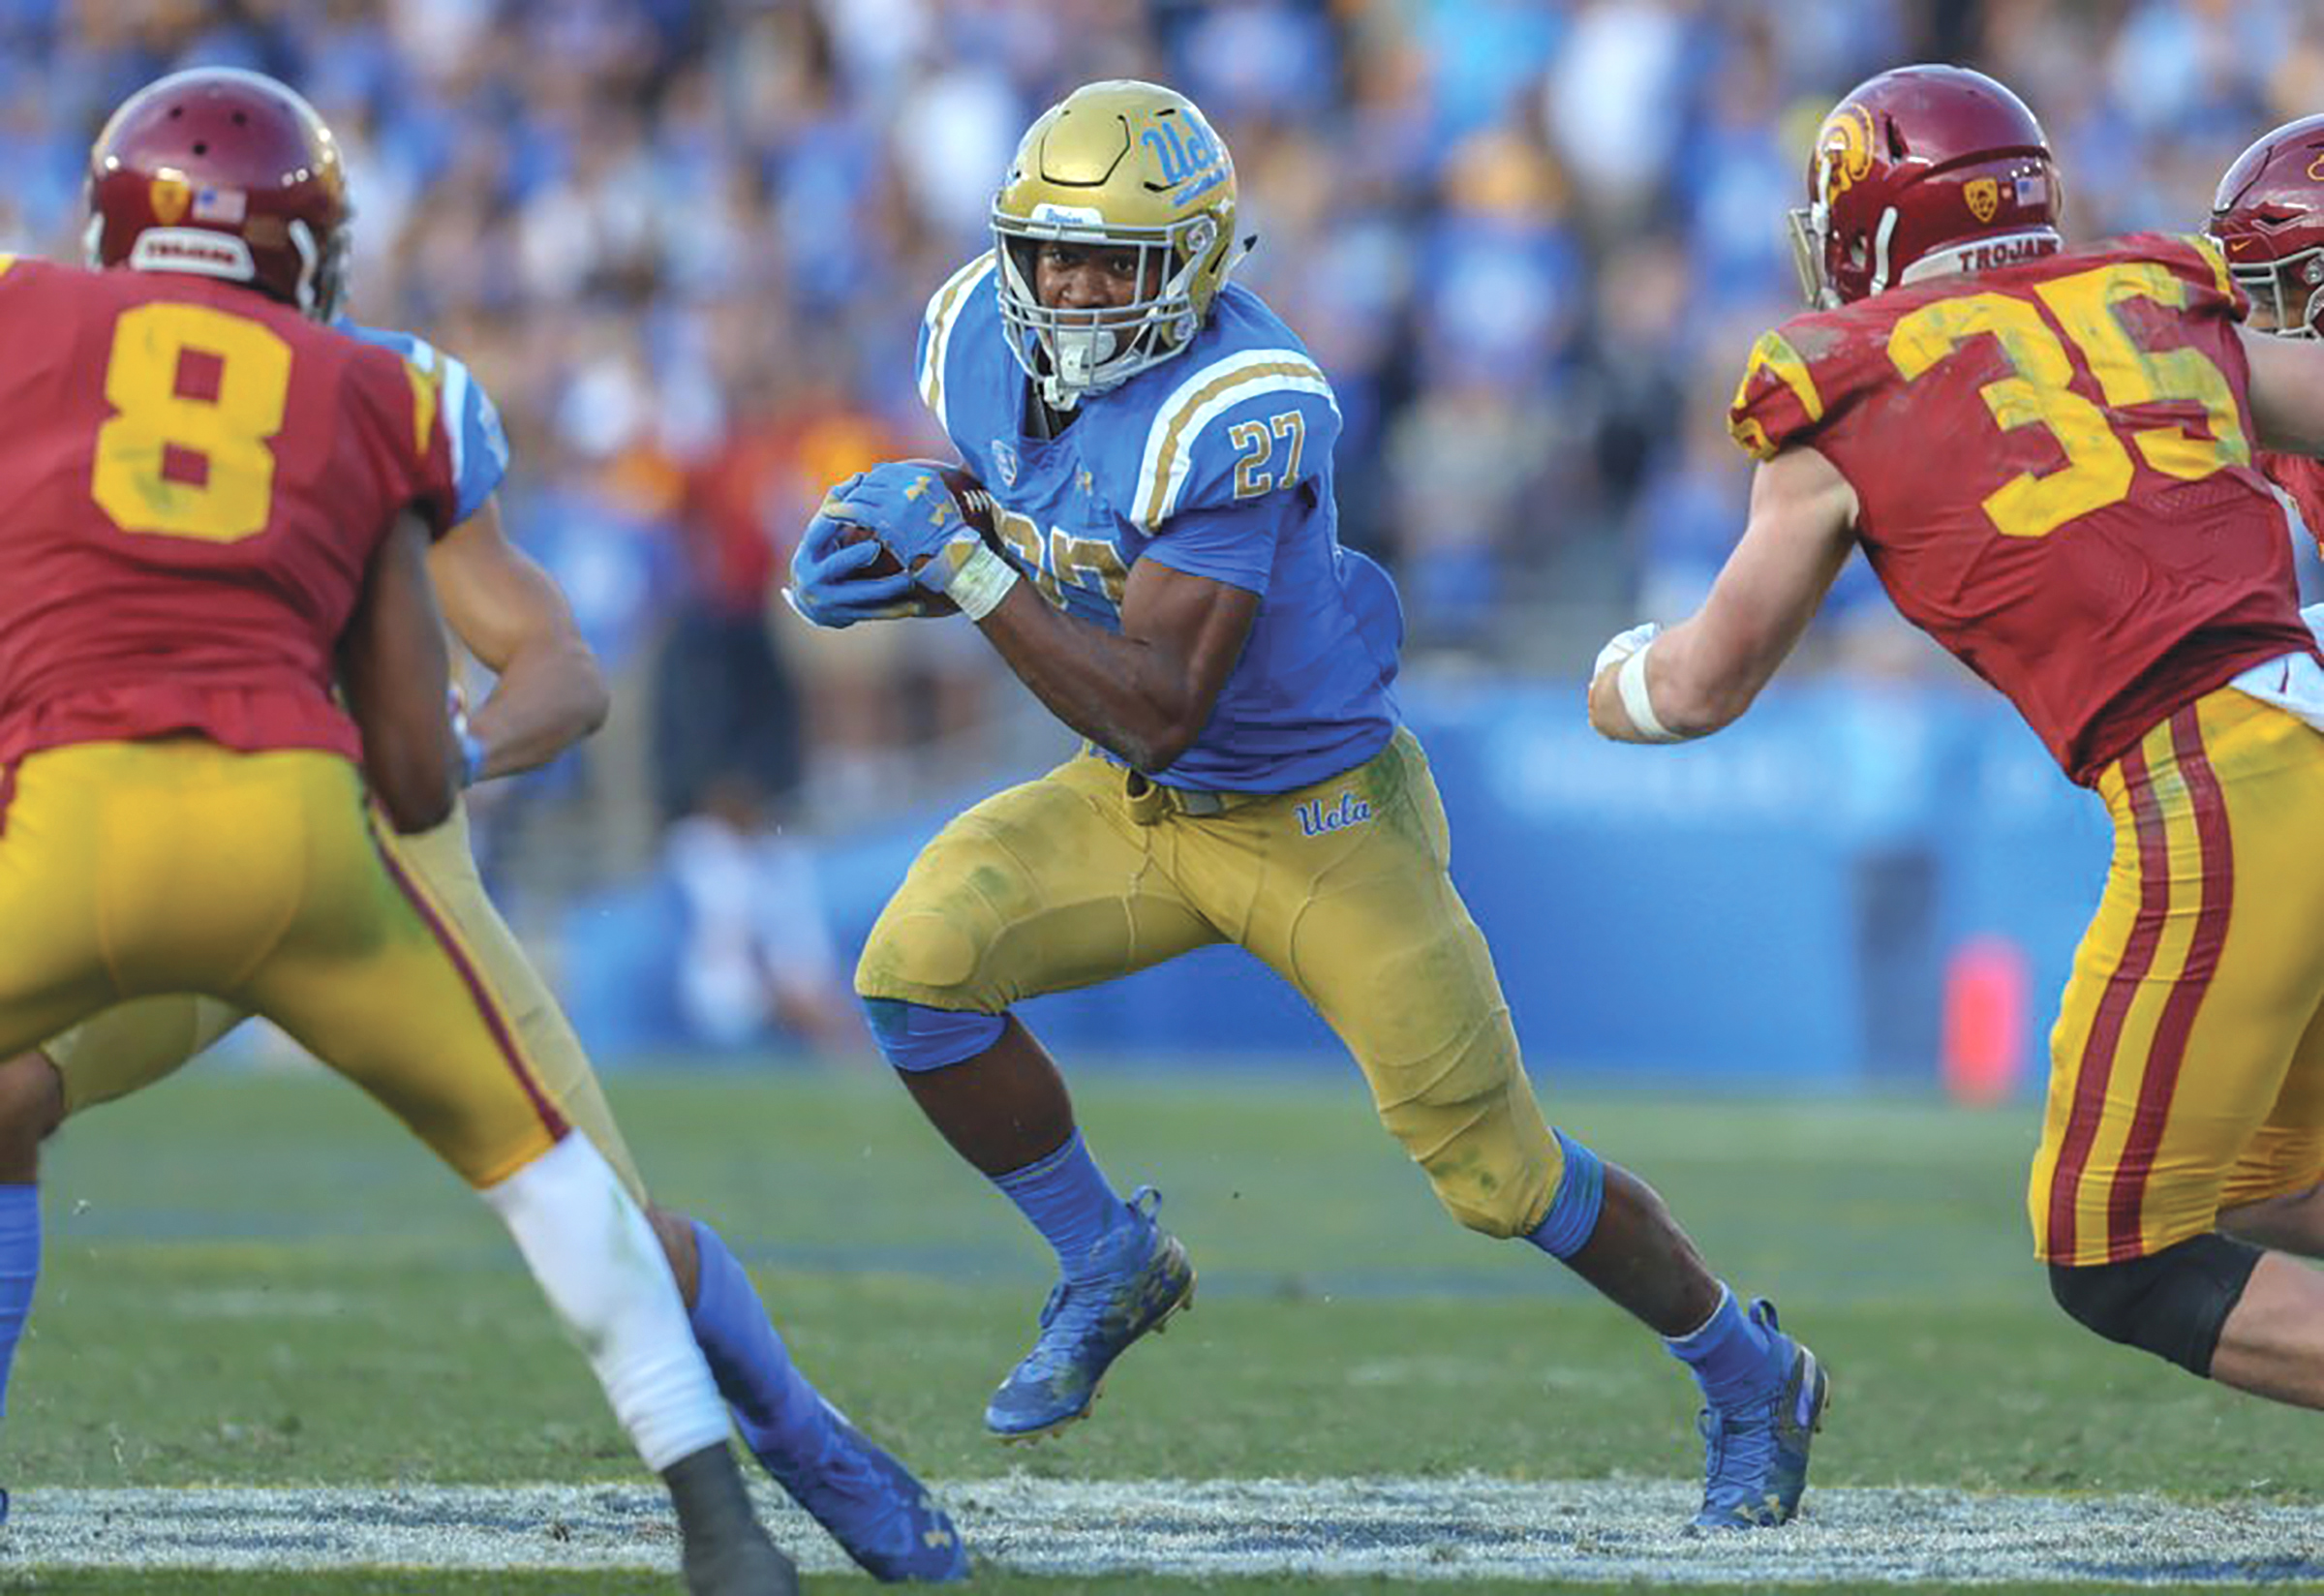 UC Davis Transfer Joshua Kelley with one of his school record 40 carries. (theathletic.com courtesy photo)